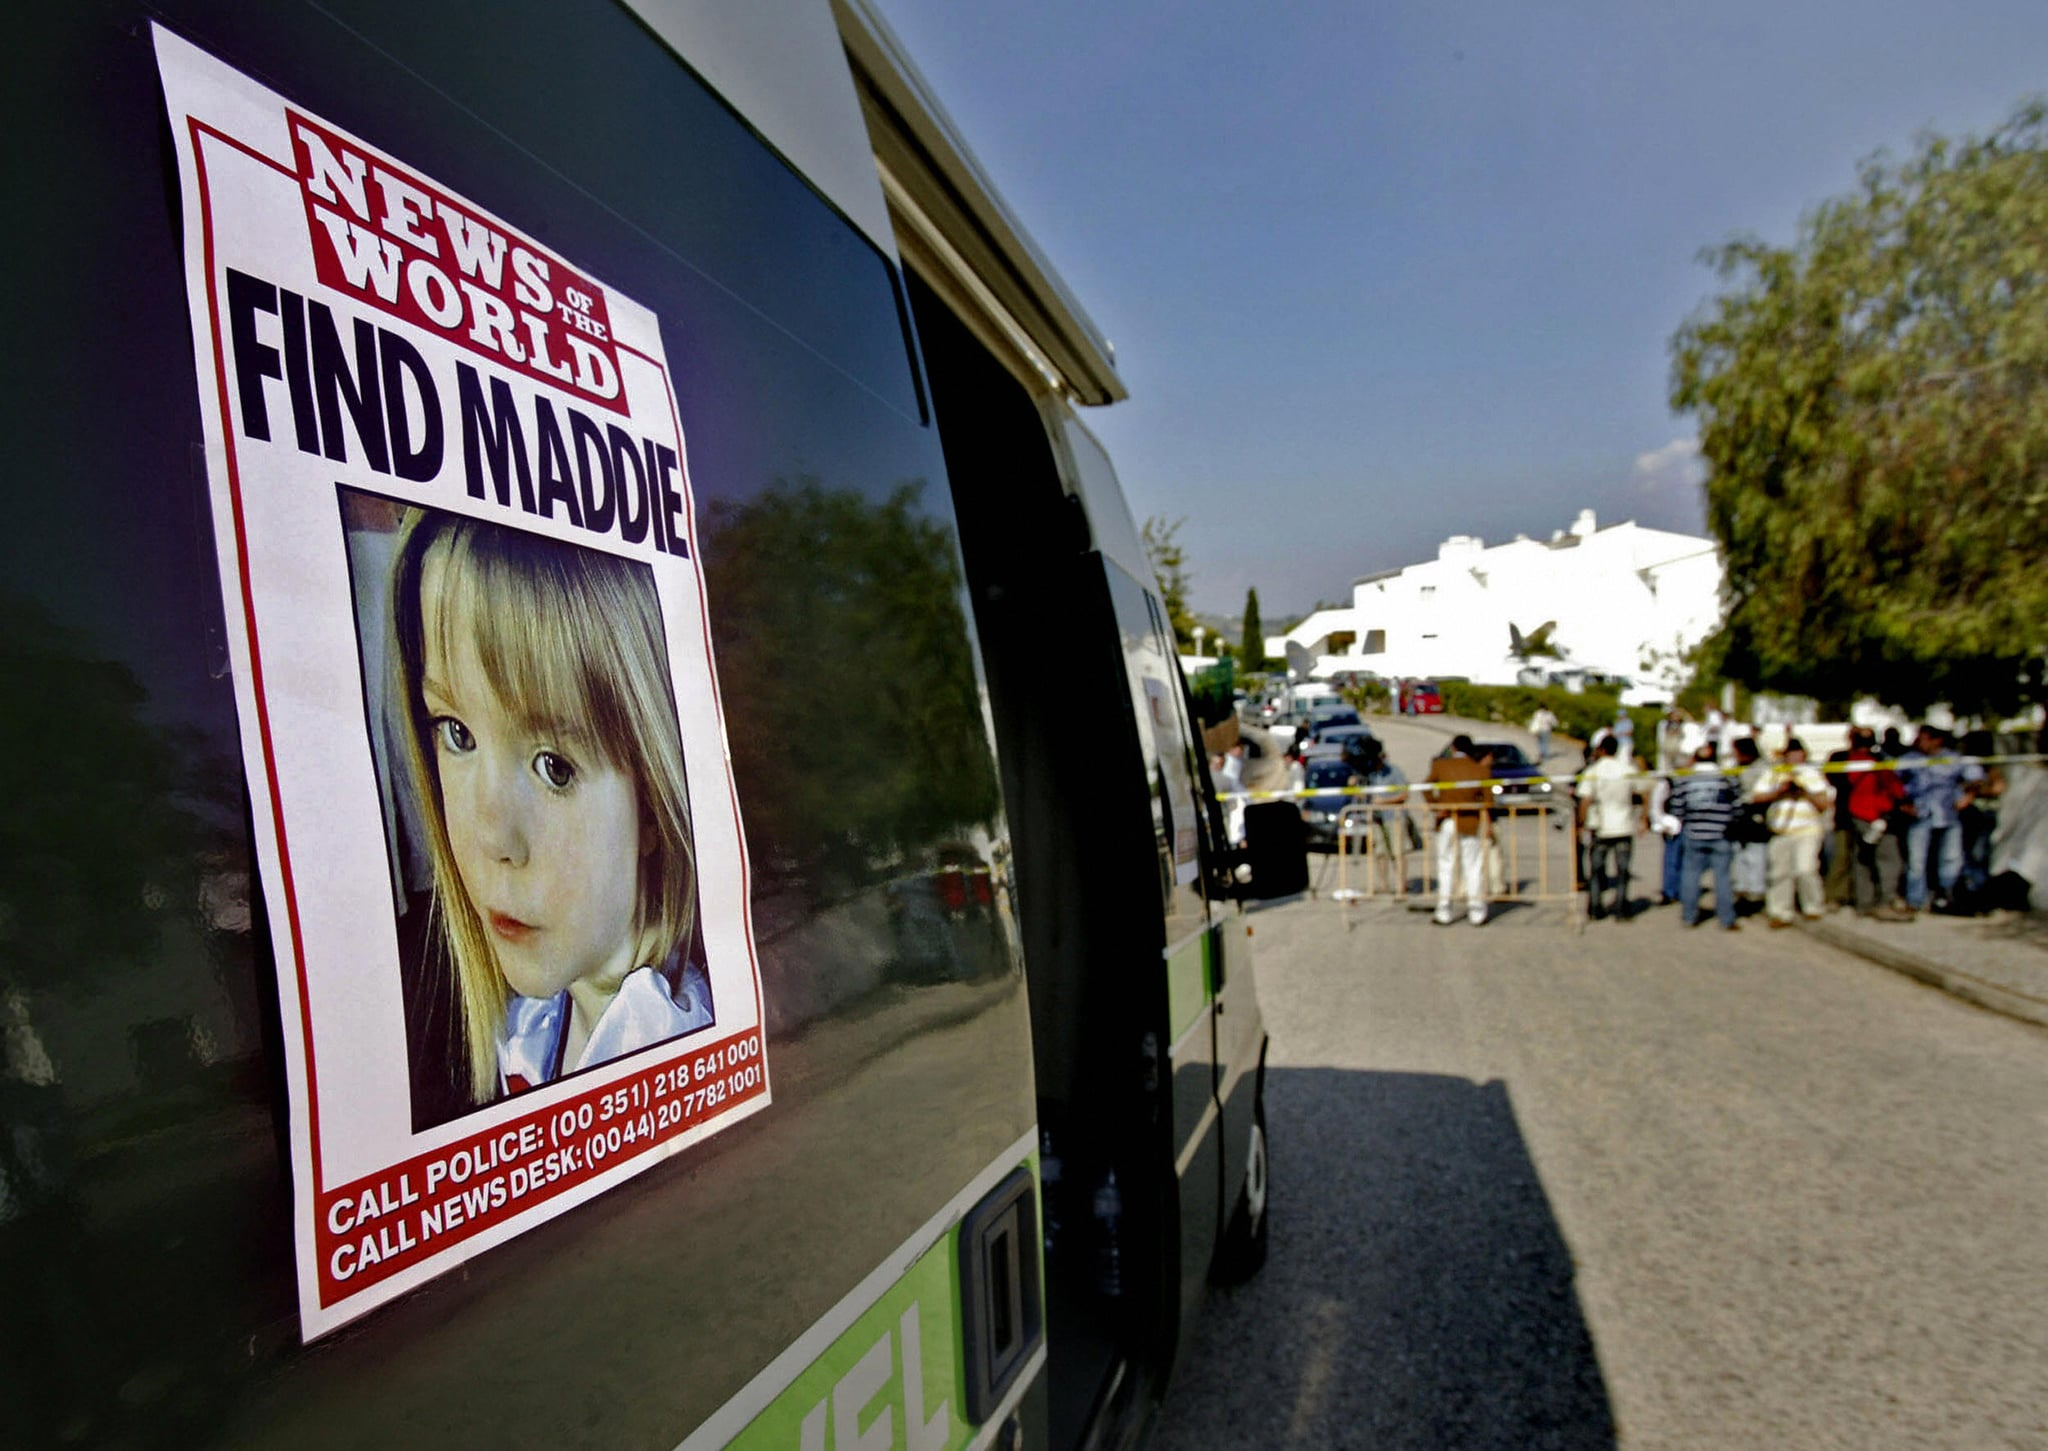 Lagos, PORTUGAL: A poster placed on a van shows the picture of three-year old British girl Madelaine McCann outside the Ocean club apartment hotel in Praia de Luz 05 May 2007, in Lagos. A team of three British police detectives arrived in Portugal today to help track down a suspected kidnapper believed to have abducted the British toddler.  AFP PHOTO/ Vasco CELIO (Photo credit should read VASCO CELIO/AFP/Getty Images)